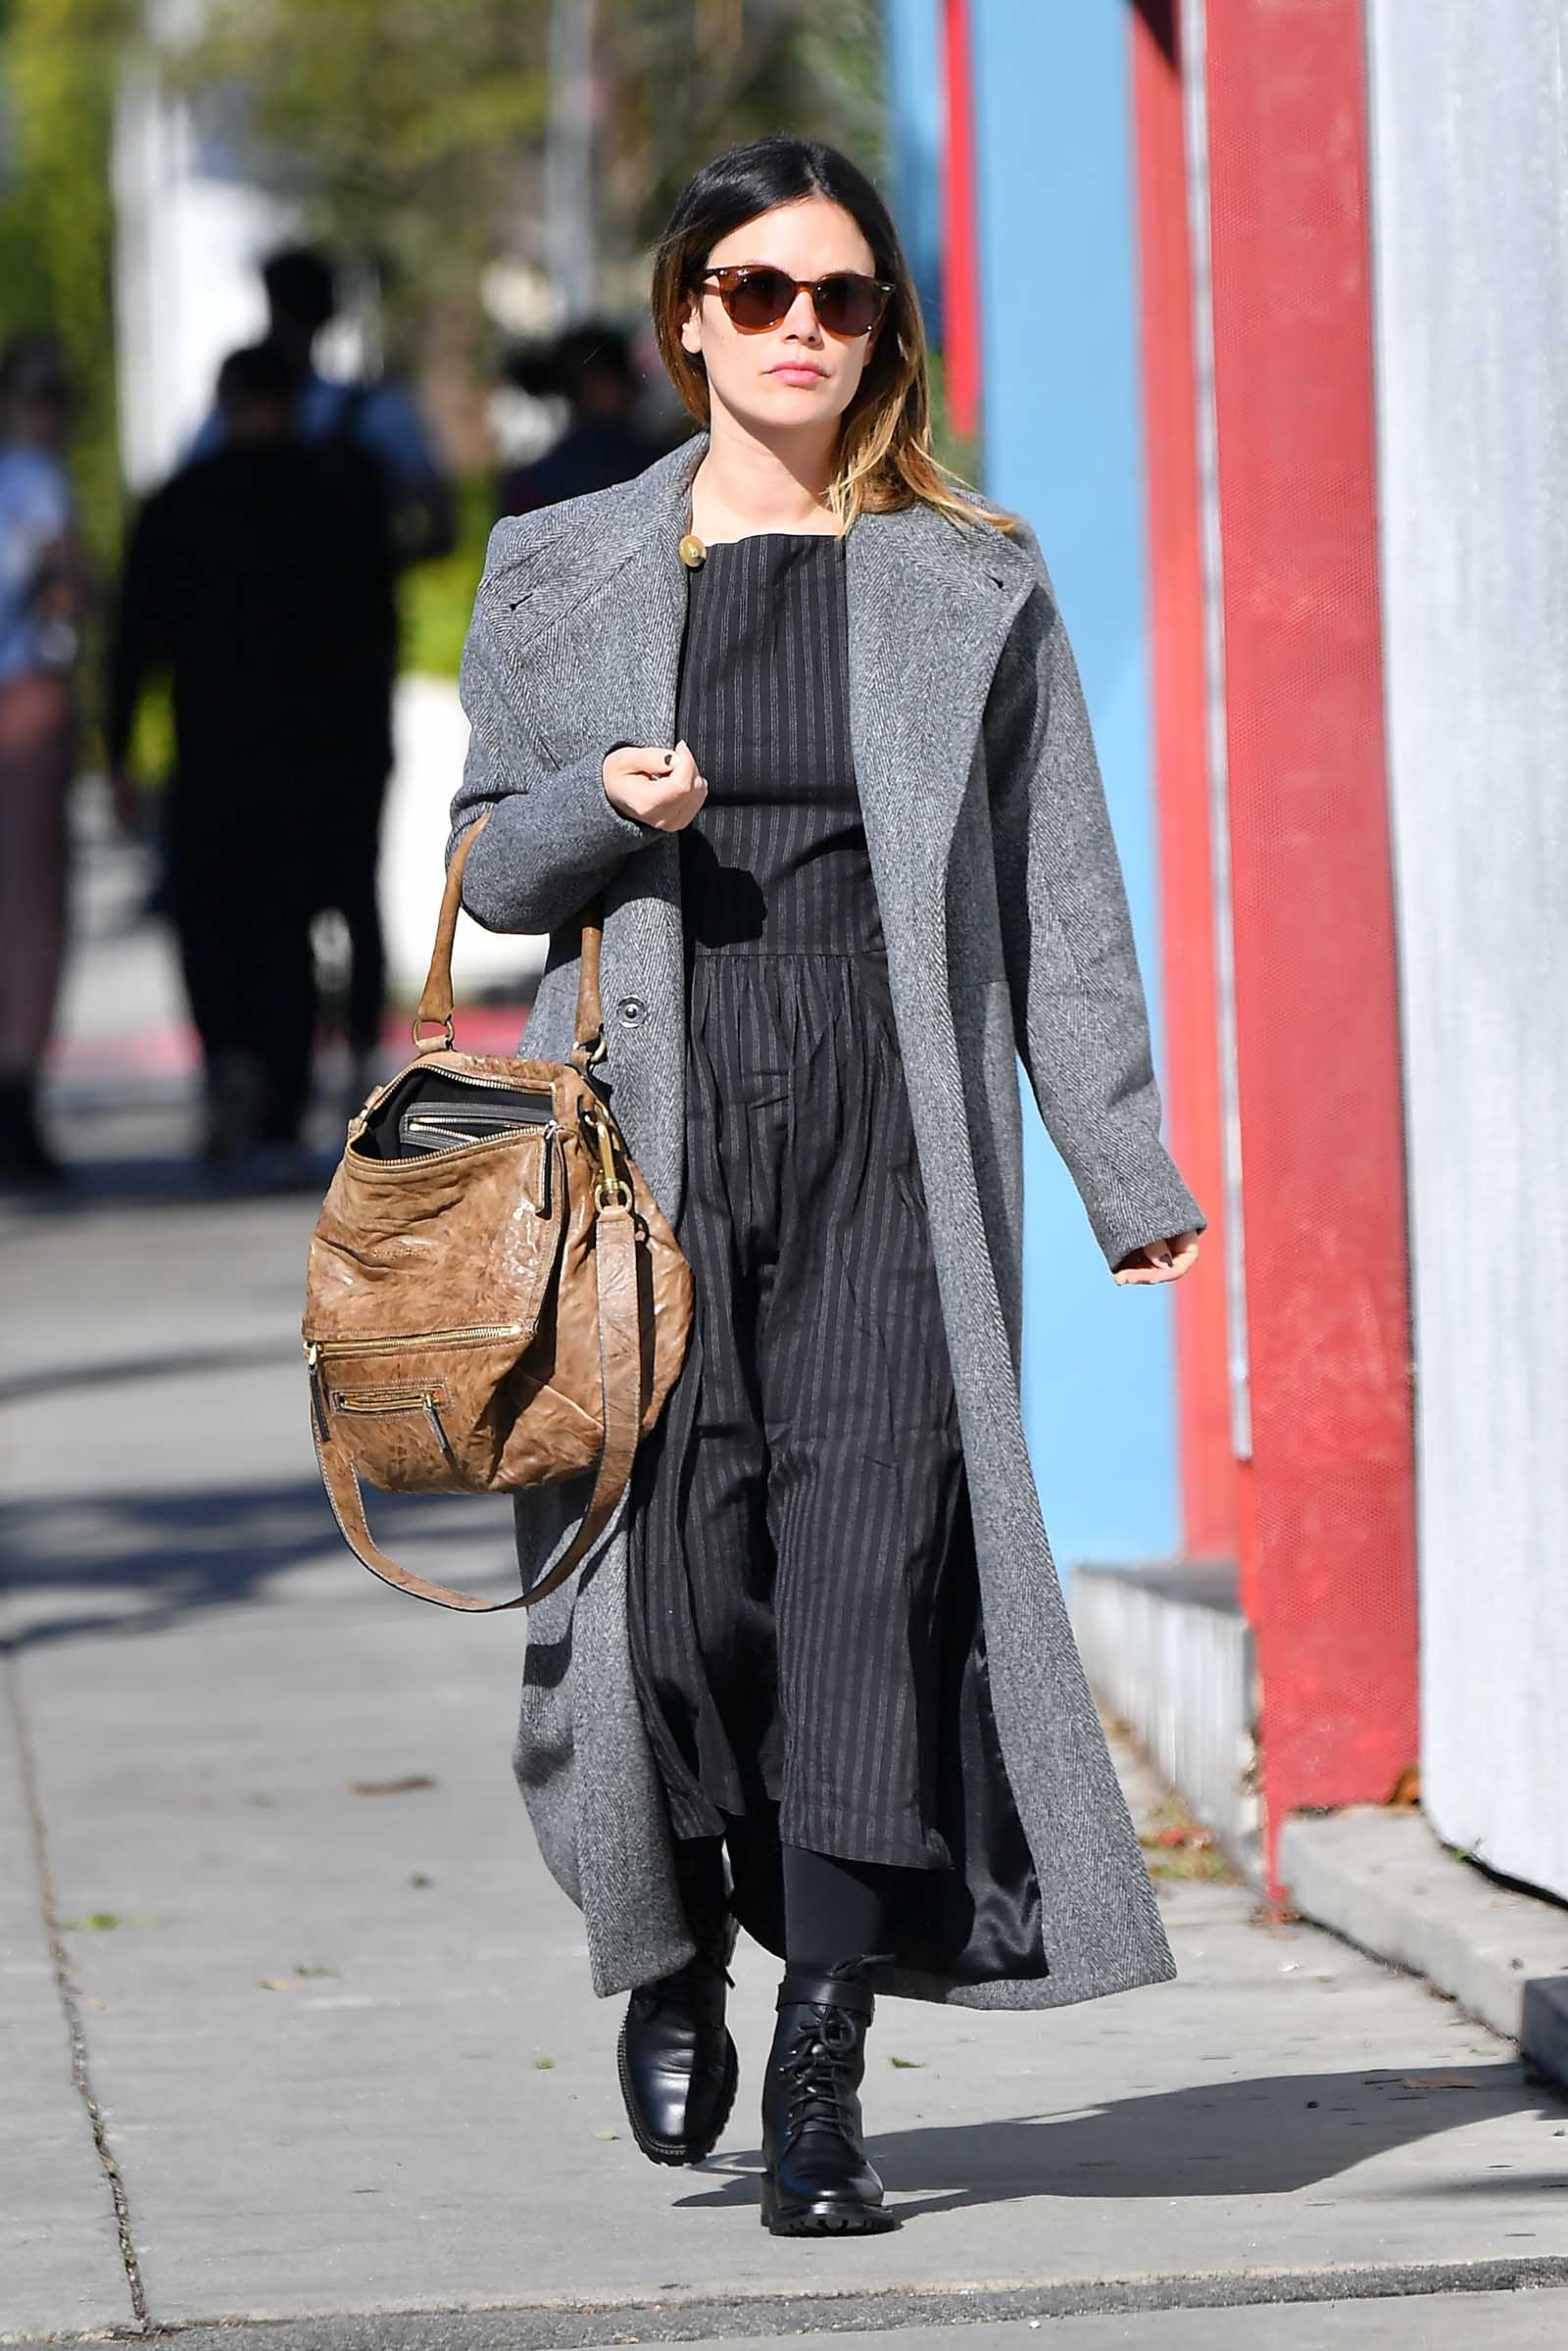 Rachel Bilson is stylish in a wool overcoat and combat boots!